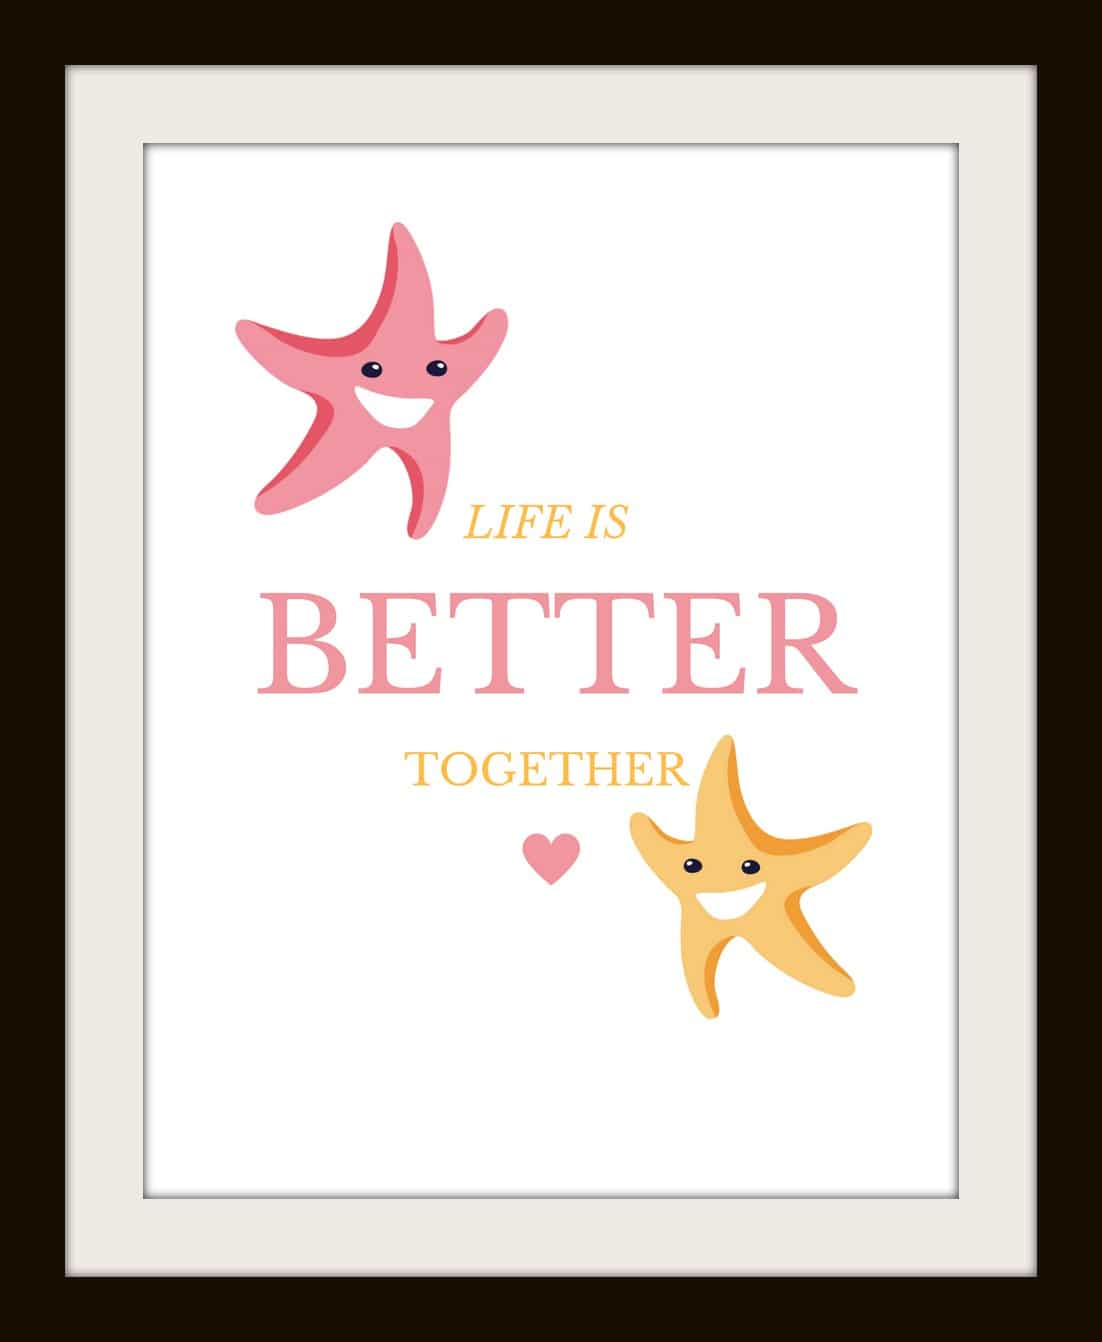 Free Nursery Printable Set of 4: Set of Whimsical Under the Sea animals with family value statements, look adorable in nursery, size 8x10 frames and PDF download